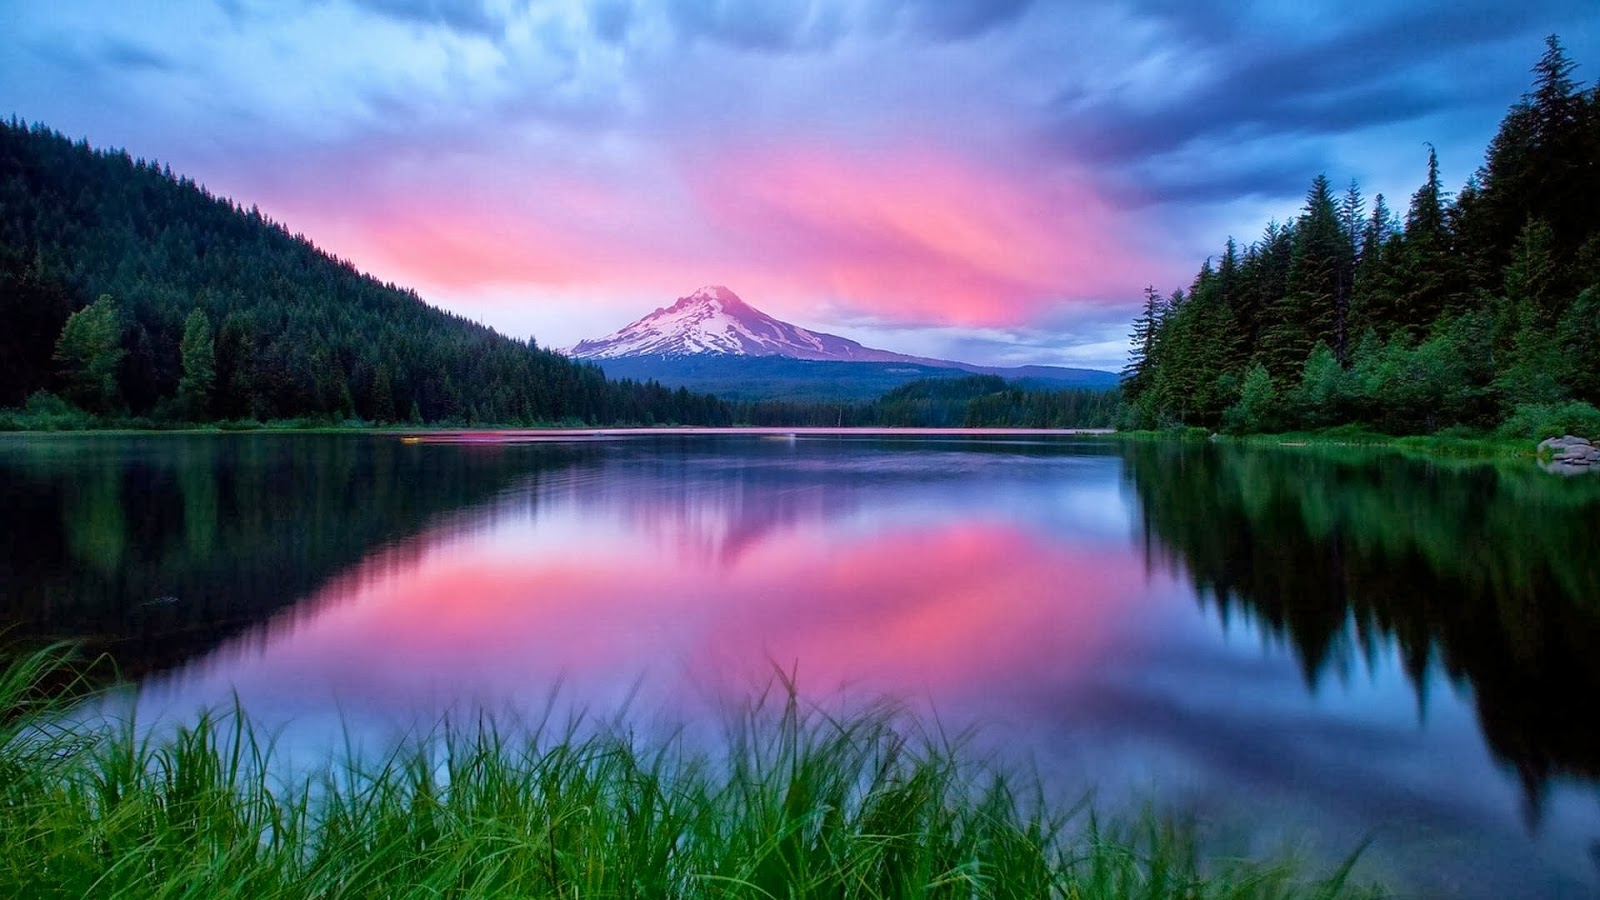 Nature Wallpapers Downloads Full HD High Res Nature Wallpapers 1600x900